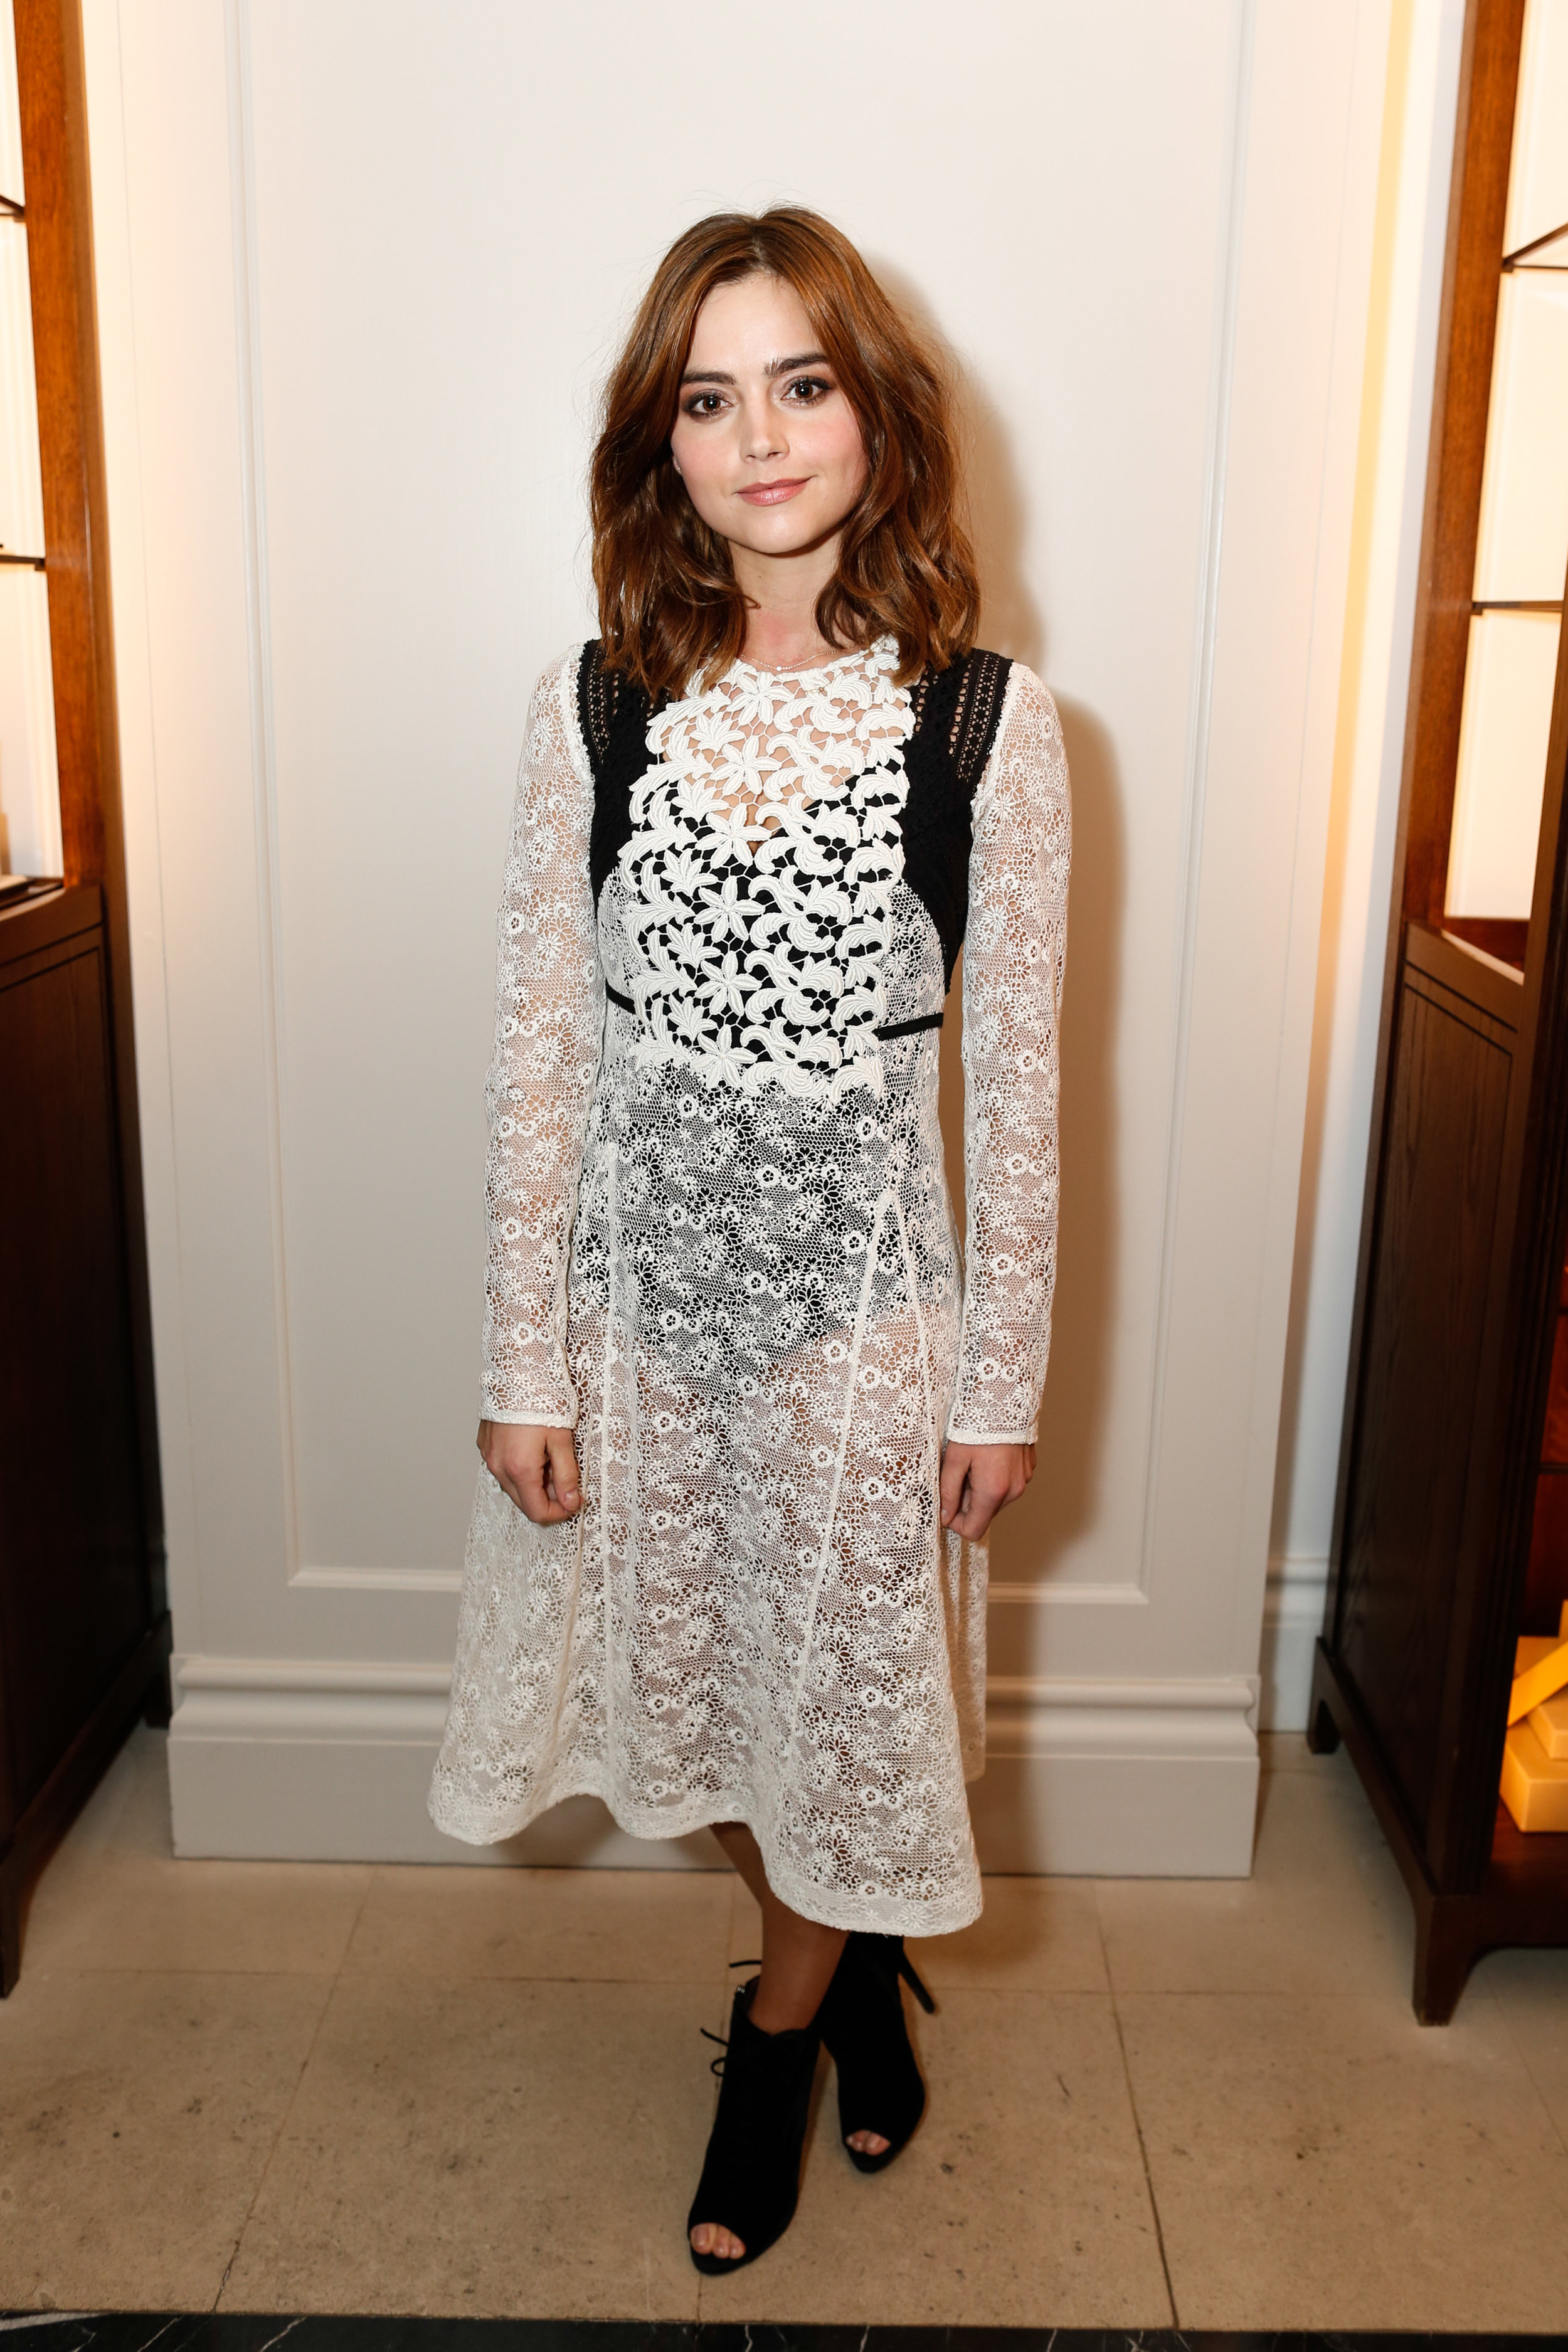 Jenna Coleman wearing Burberry at the Burberry So It Goes event at Thomas's, London, 9th February 2016